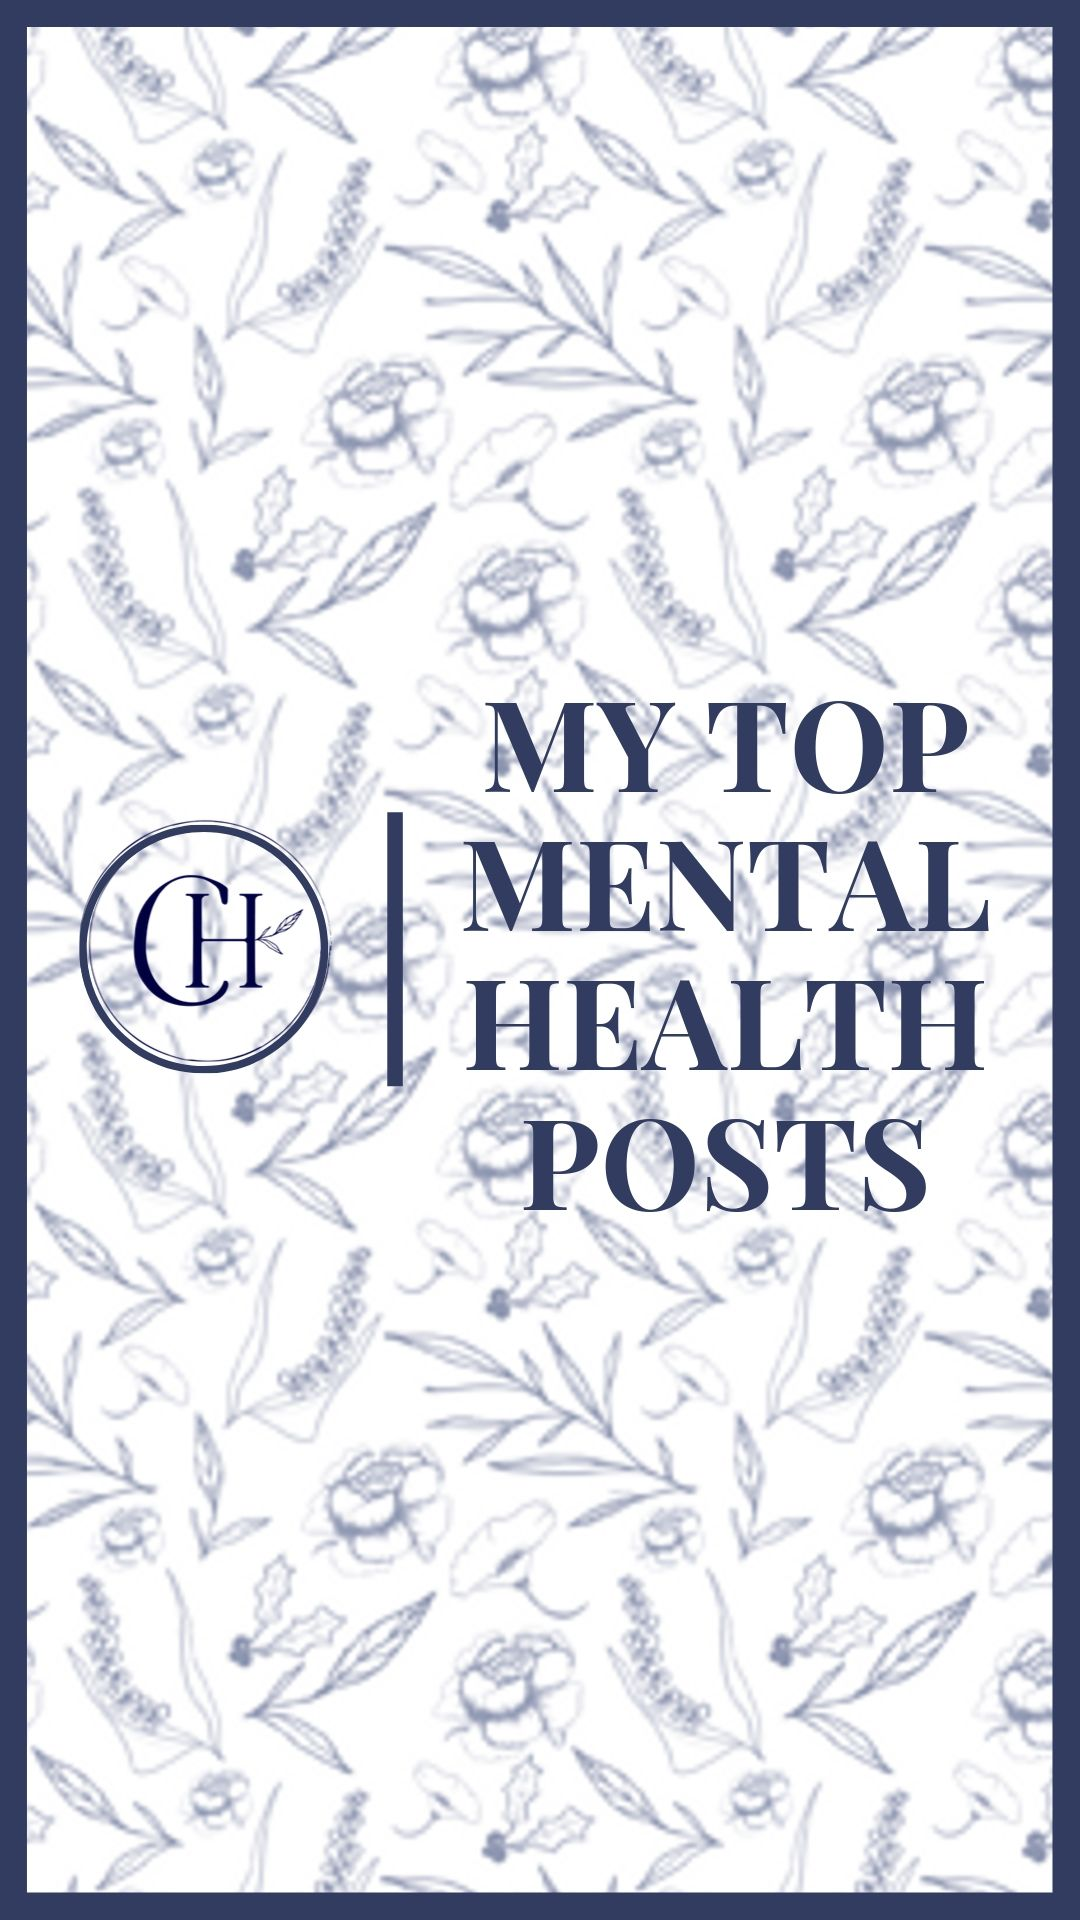 Top Mental Health Posts By Caitlin Houston about Anxiety, Depression, and Postpartum Depression